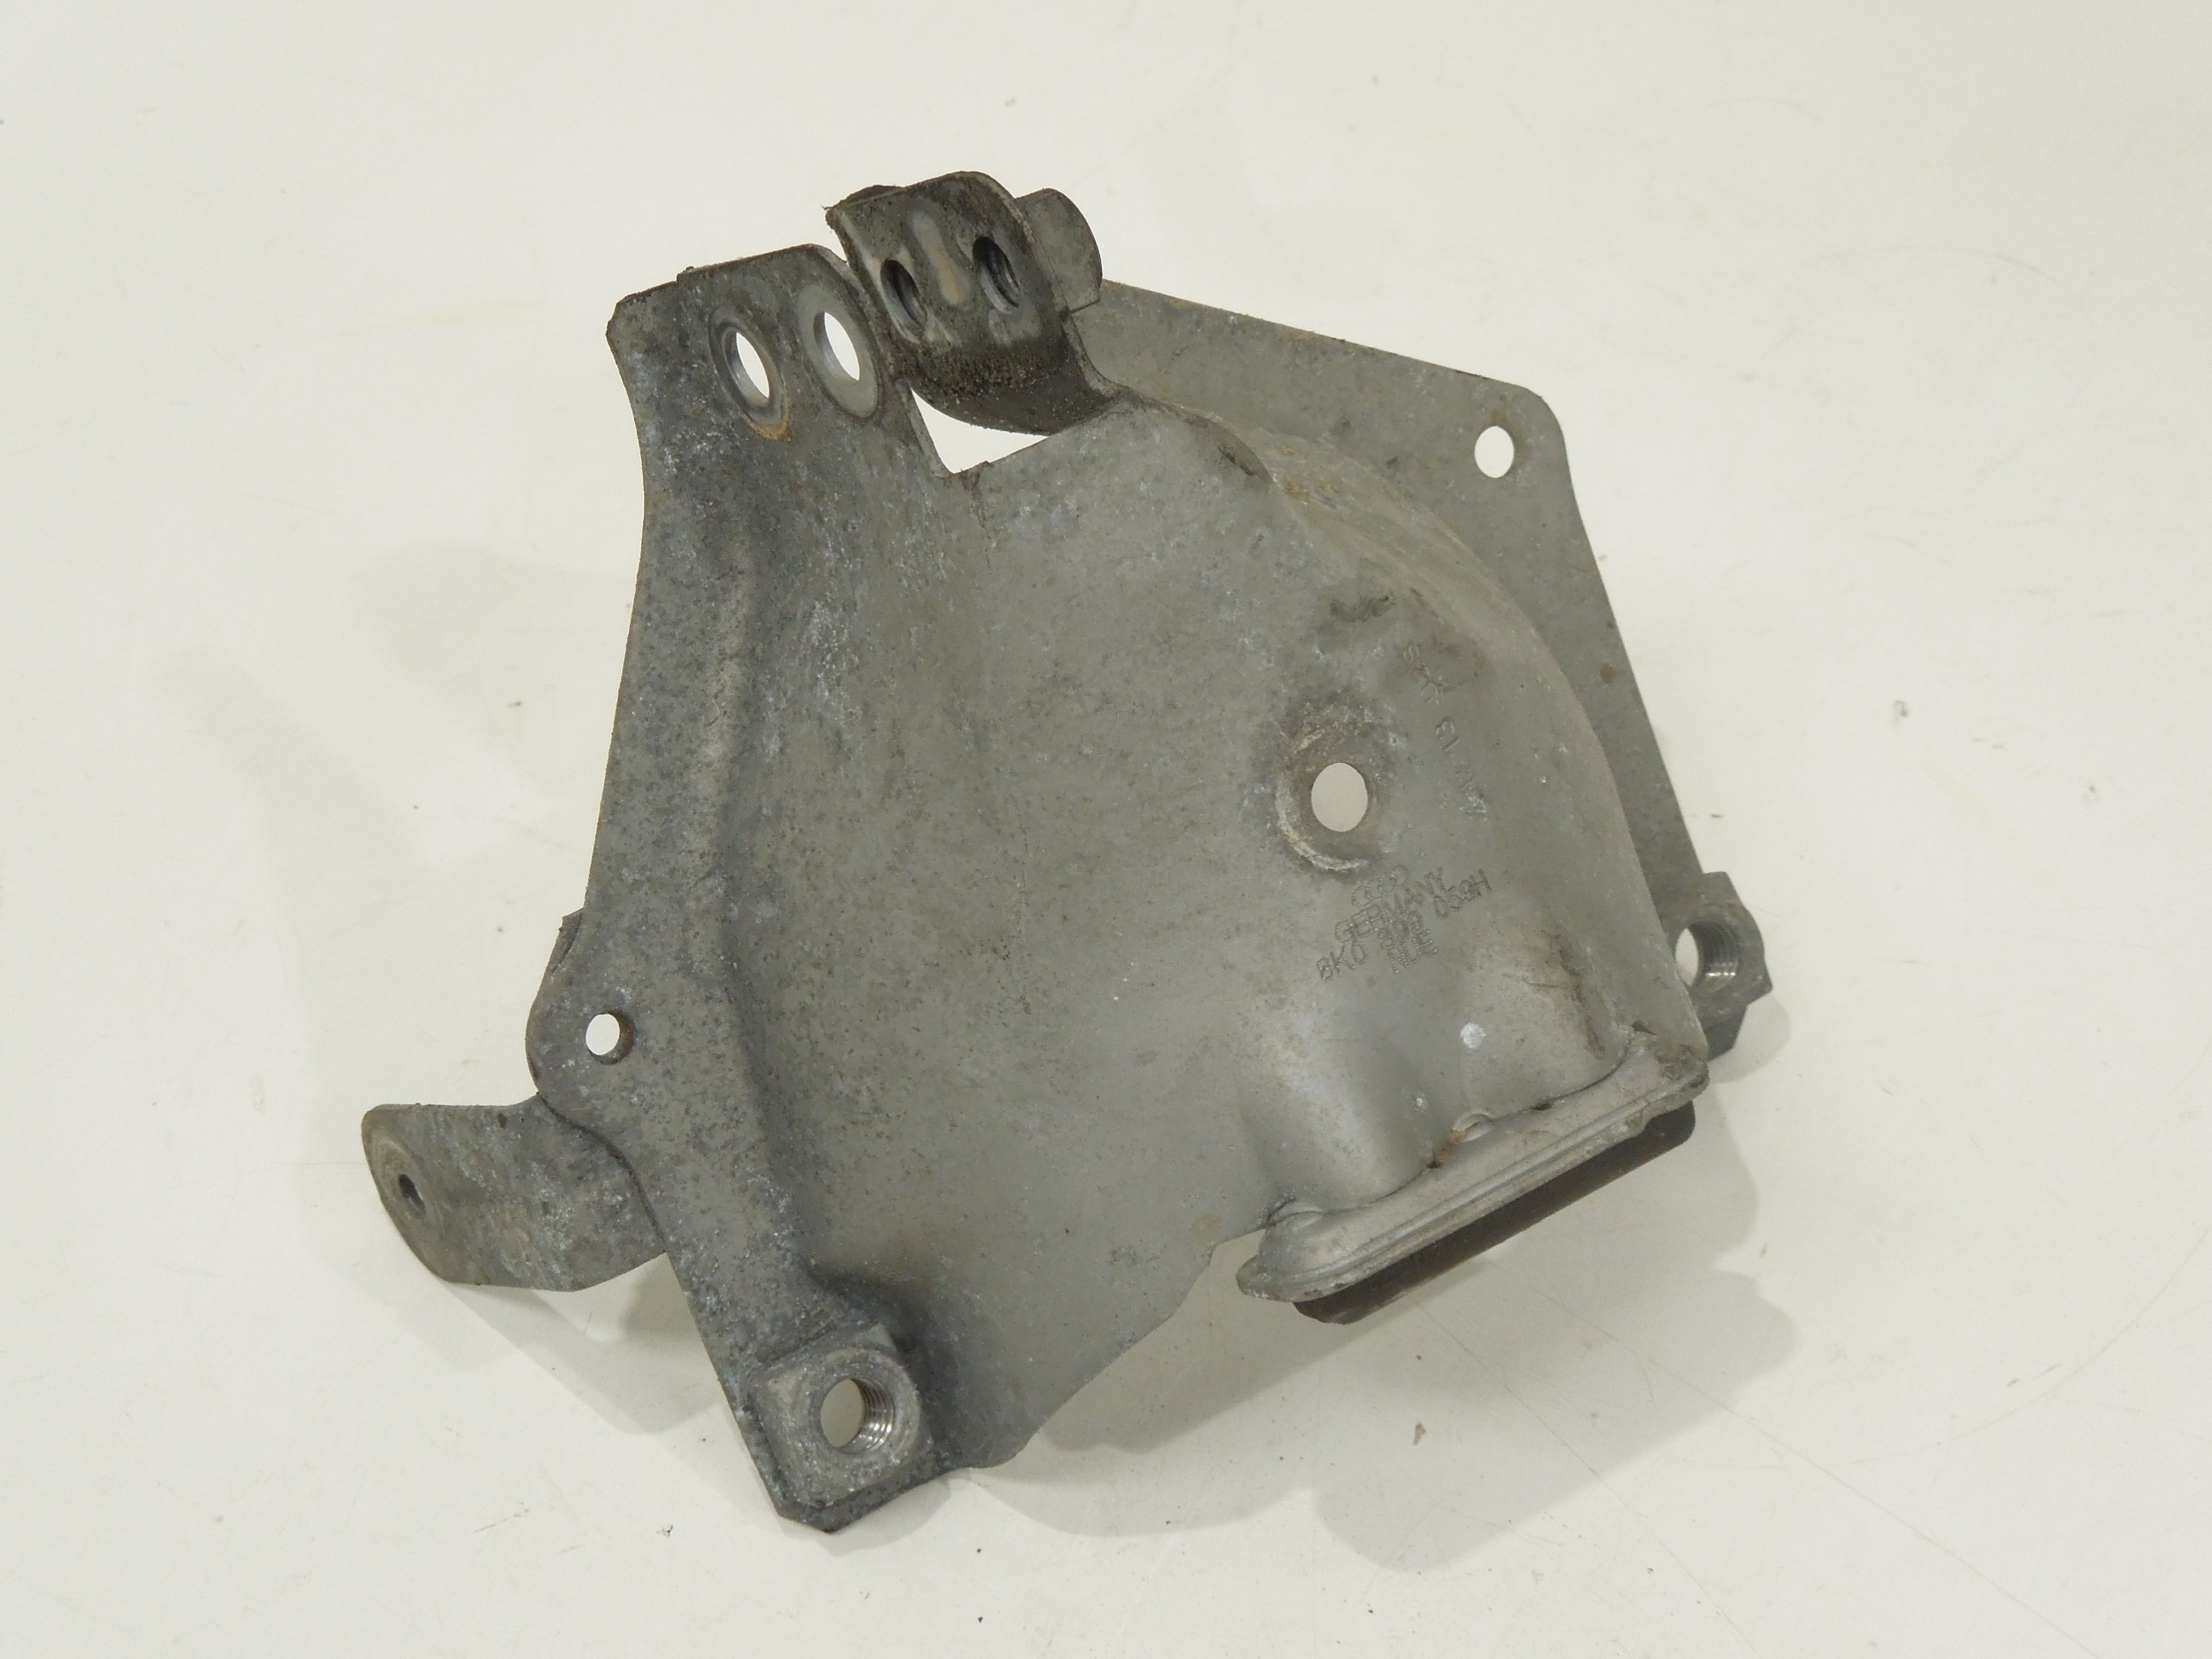 2009 2010 2011 2012 Audi A4 A5 left engine motor mount cover shield 8K0399059